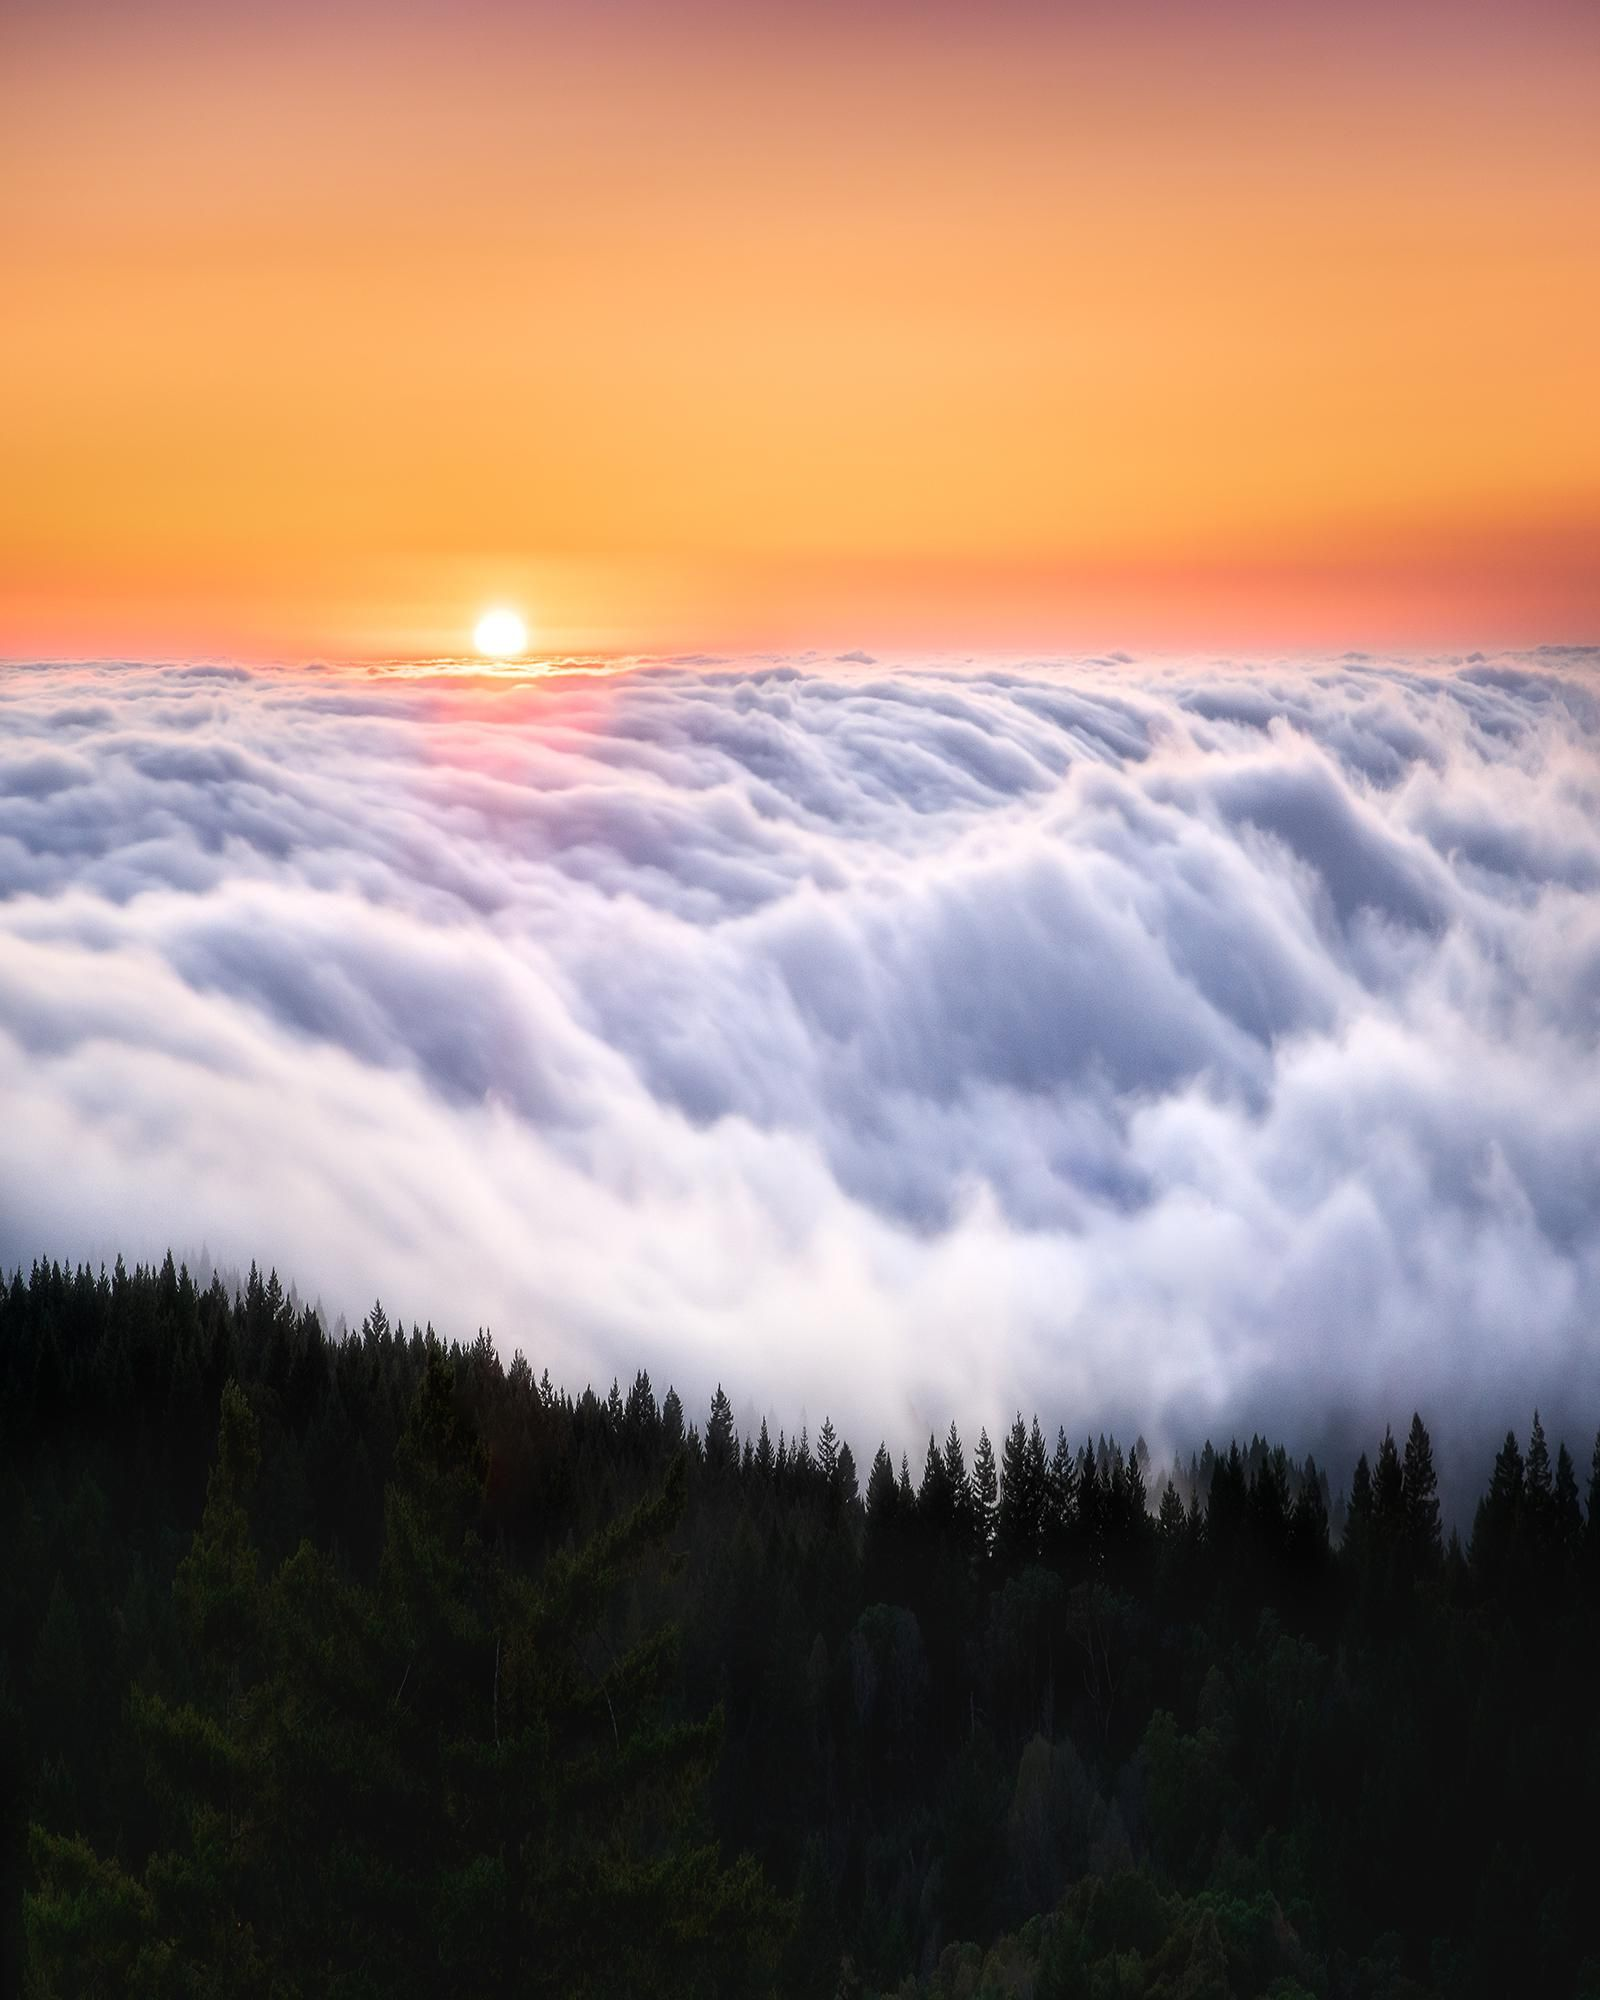 Itap Of A Sunset That Looks Like The Indian Flag Theurbanvoyager Photo Background Editor Wallpaper Above The Clouds Sky Aesthetic Landscape Photography